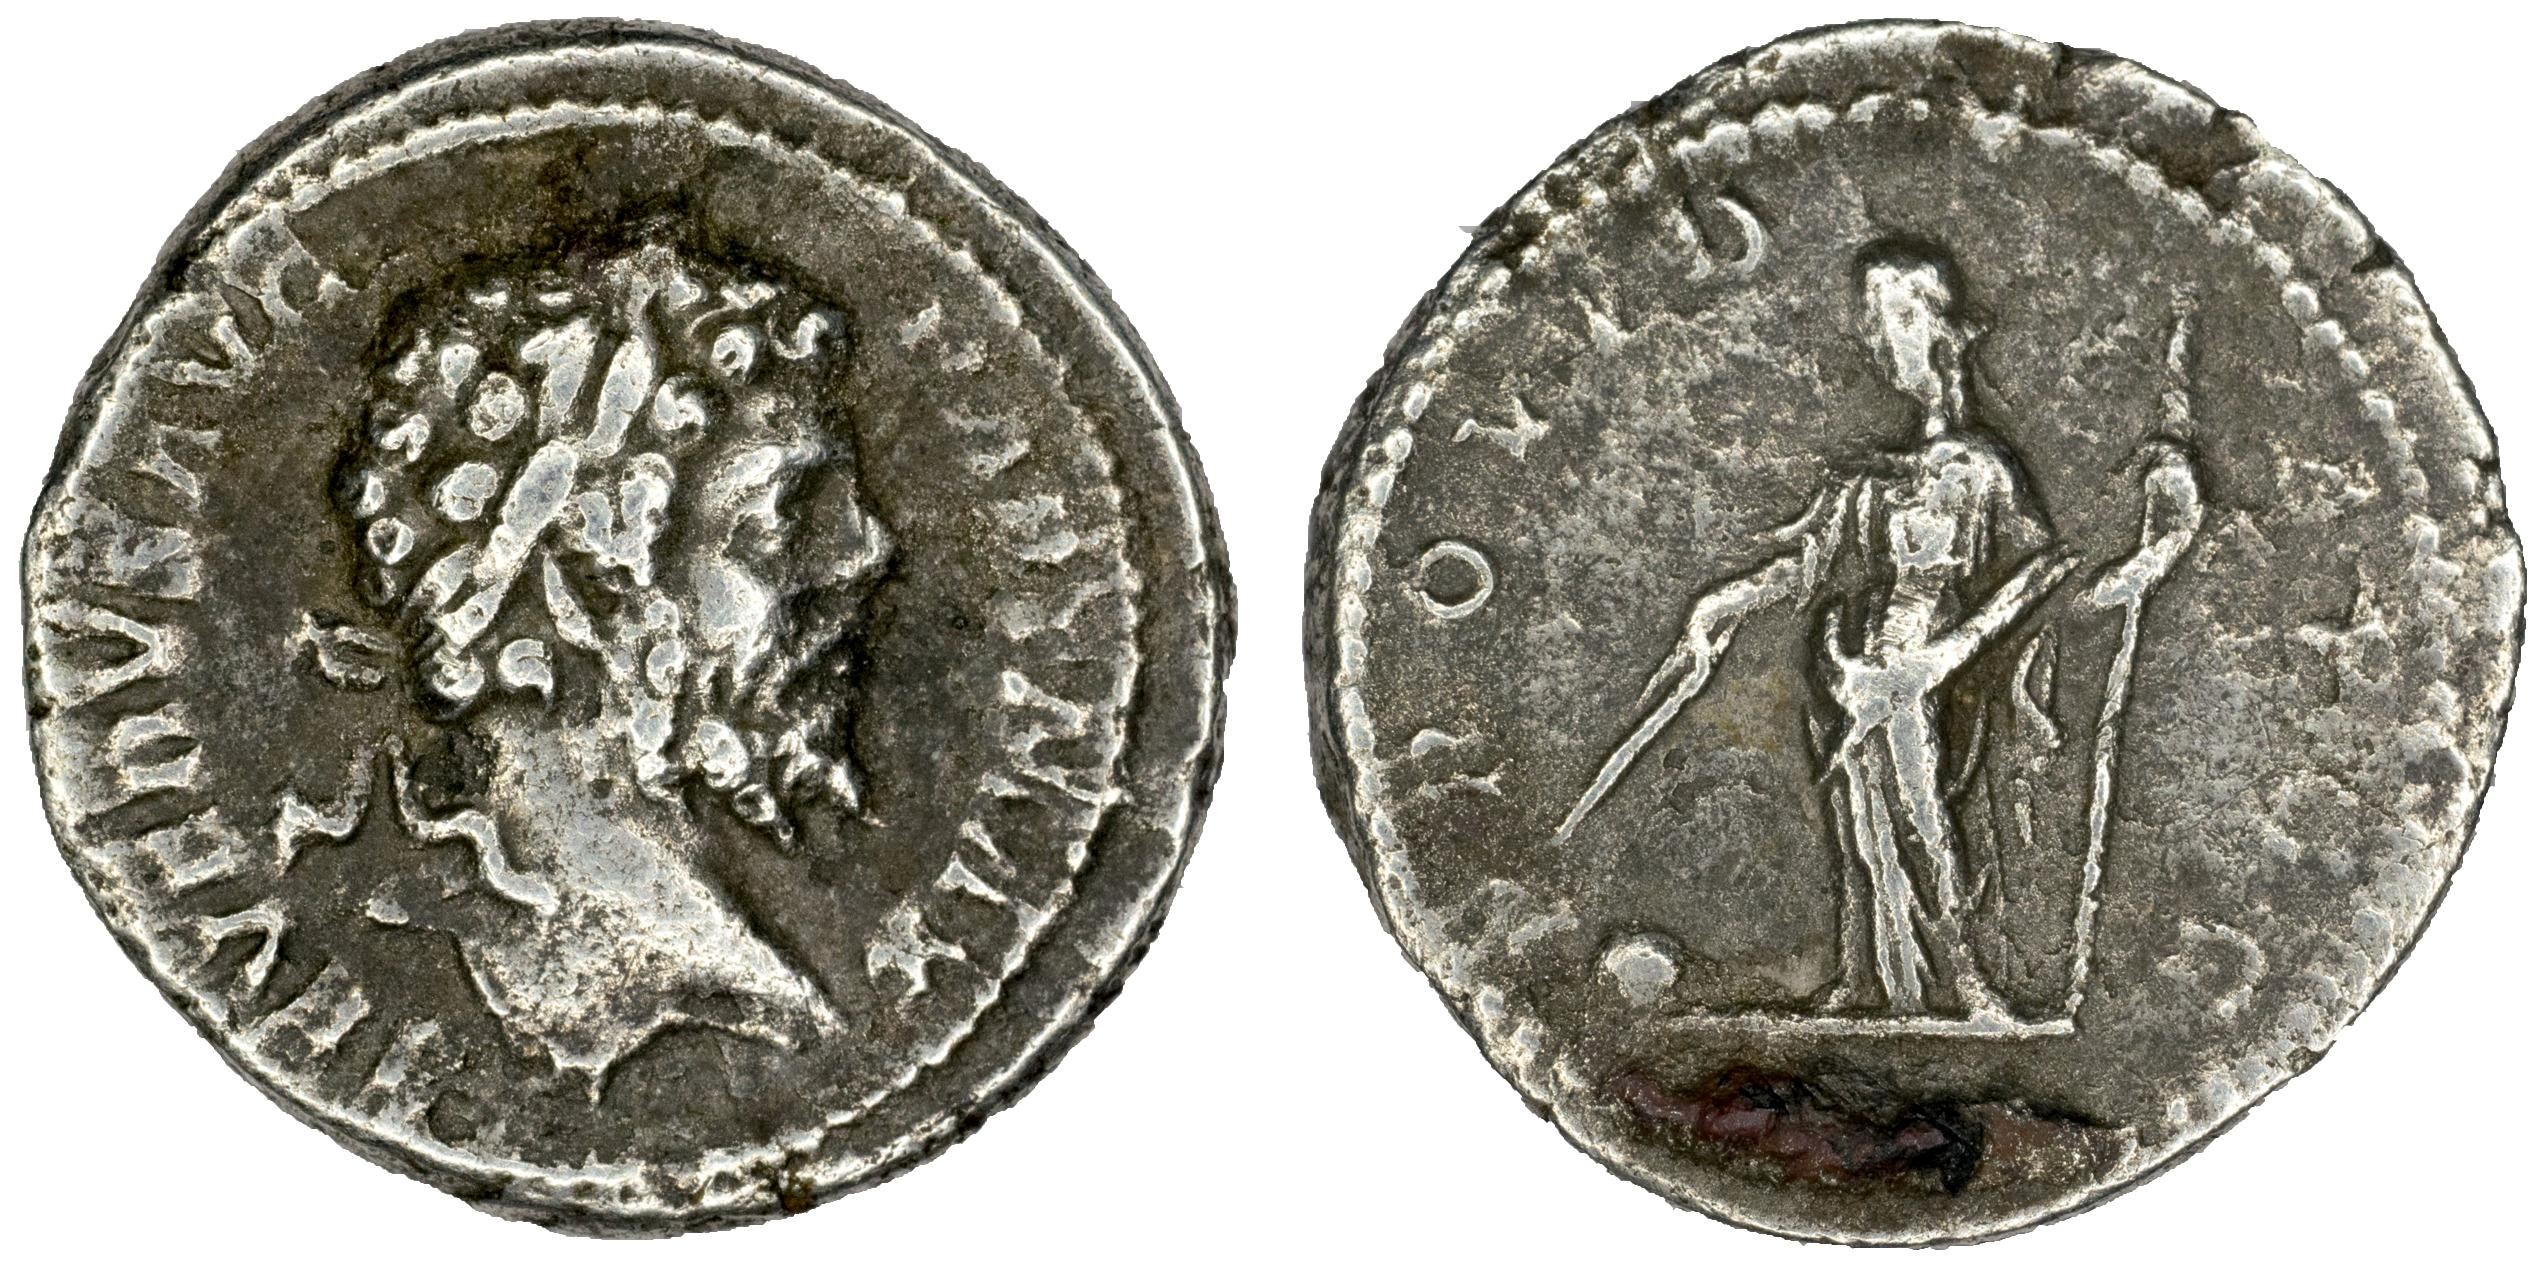 /Files/Images/Coinsite/CoinDB/SeptimiusSeverus.jpg